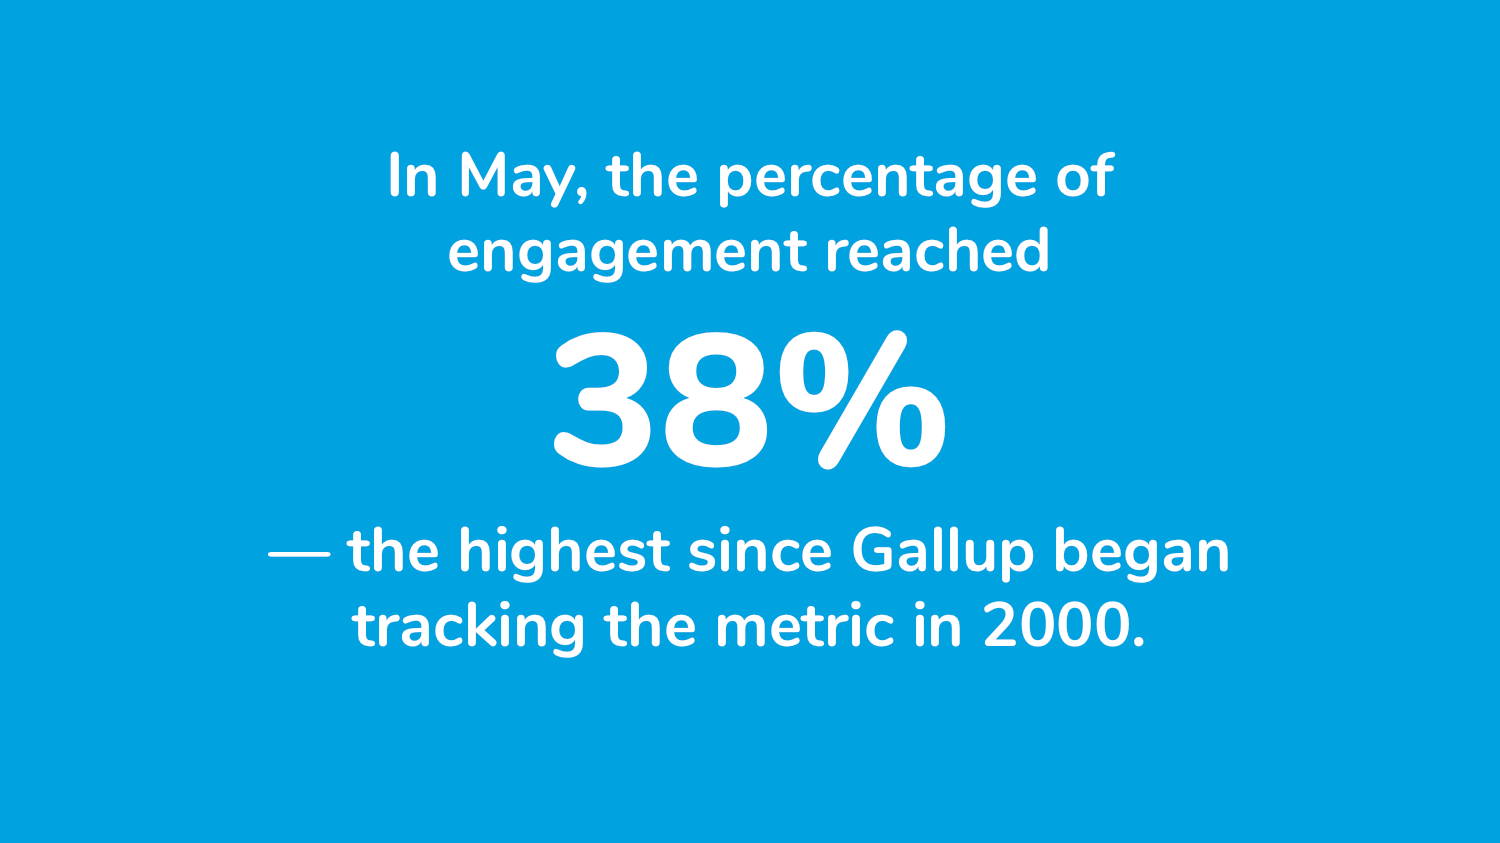 In May, the percentage of engaged employees reached 38% - the highest since Gallup began tracking the metric in 2000.